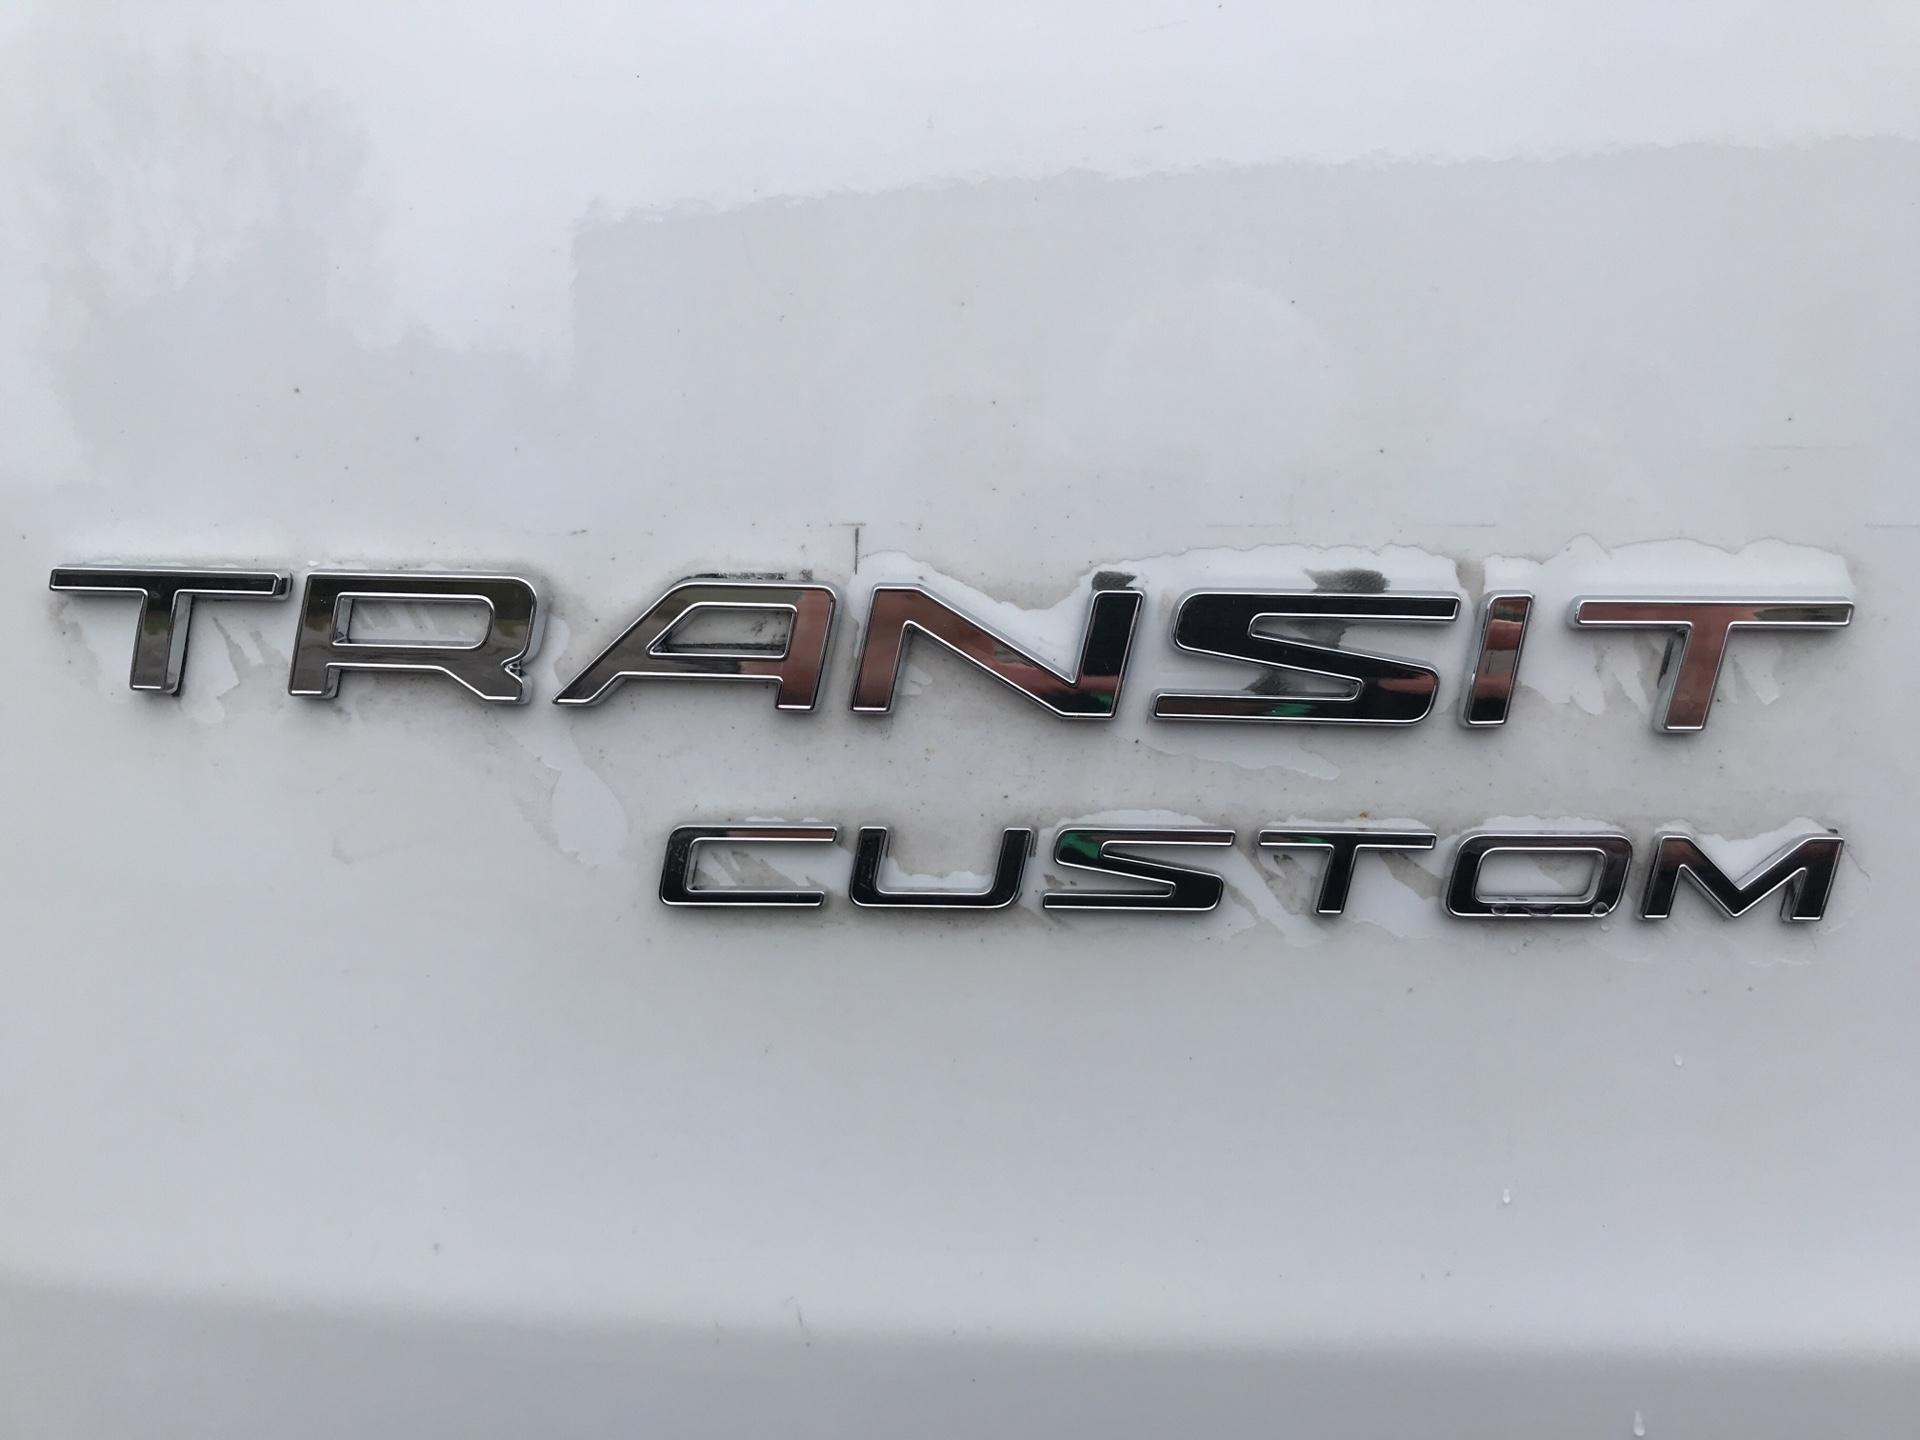 2014 Ford Transit Custom 290 L1 DIESEL FWD 2.2 TDCI 100PS LOW ROOF VAN EURO 5 (NJ64MKE) Image 17